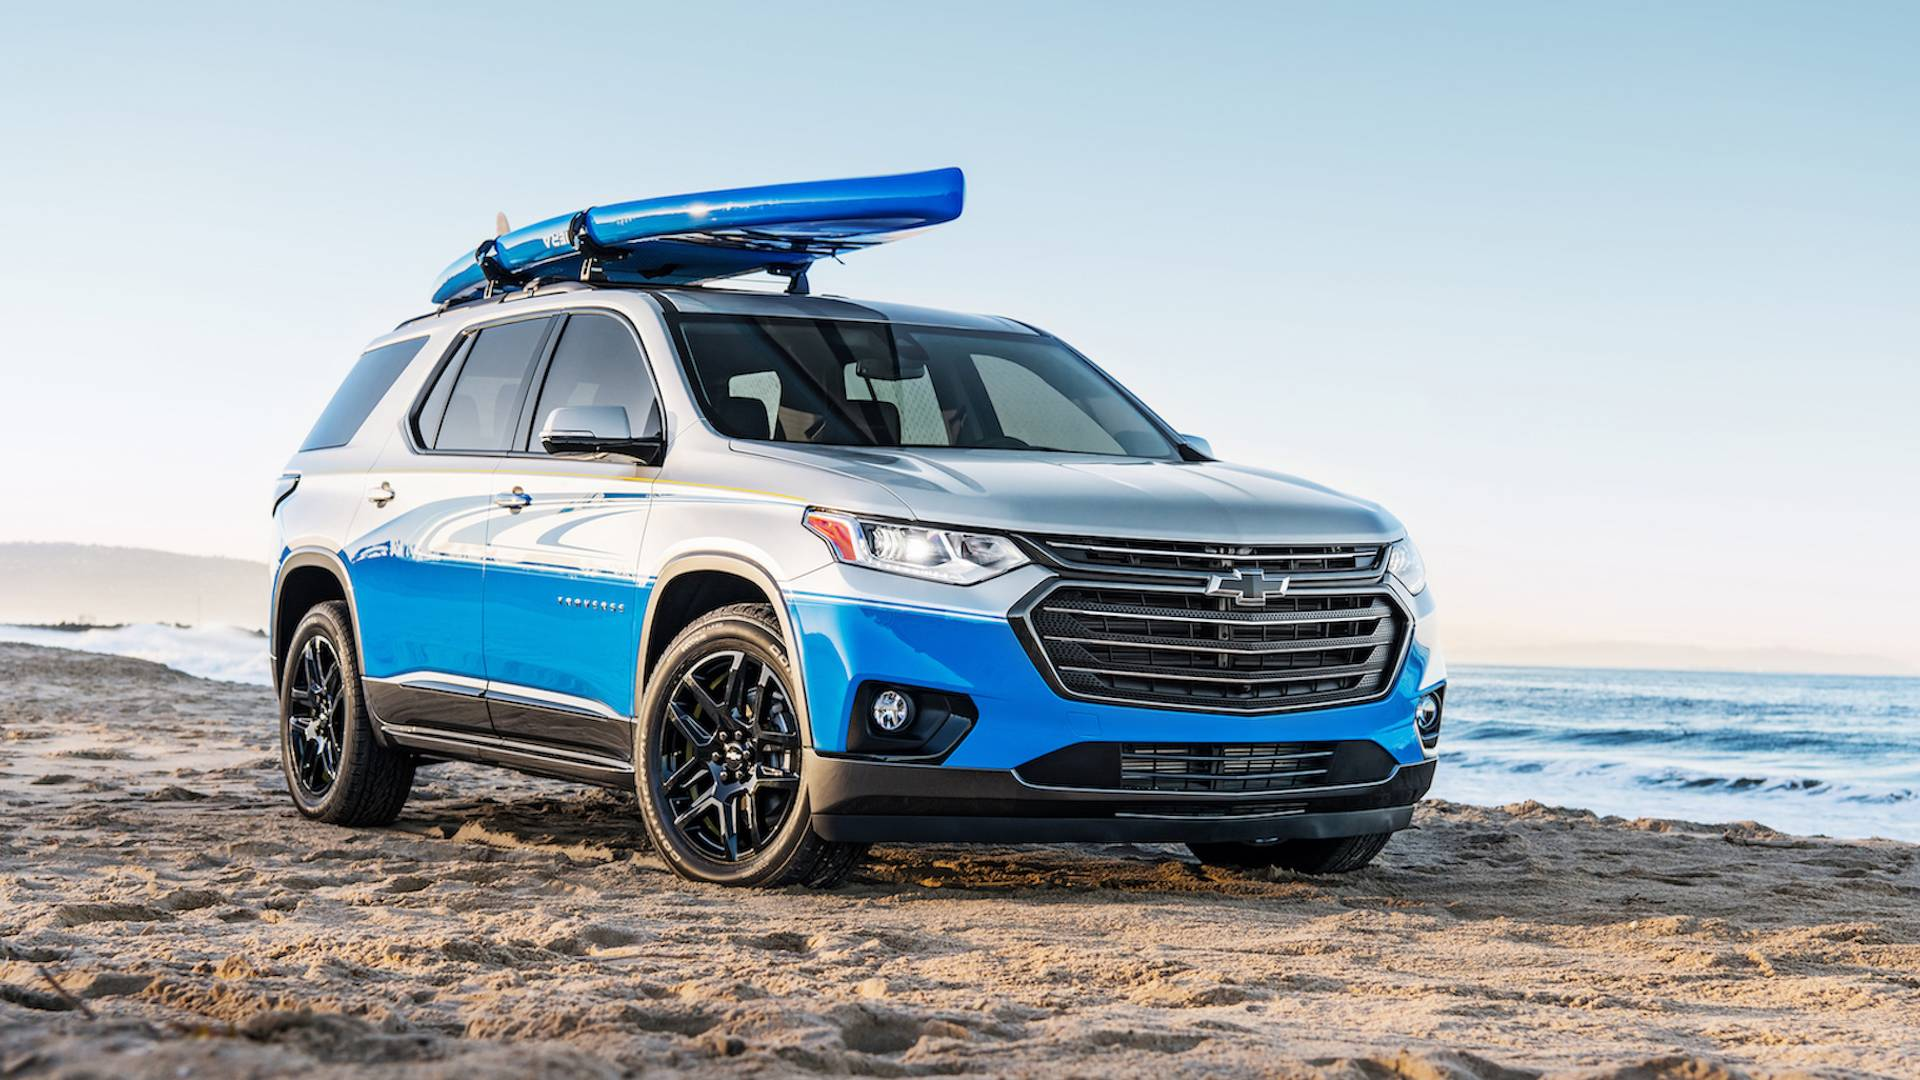 Superb Chevrolet Traverse Sup Concept Is A Paddle Boarders Dream Wiring Cloud Orsalboapumohammedshrineorg